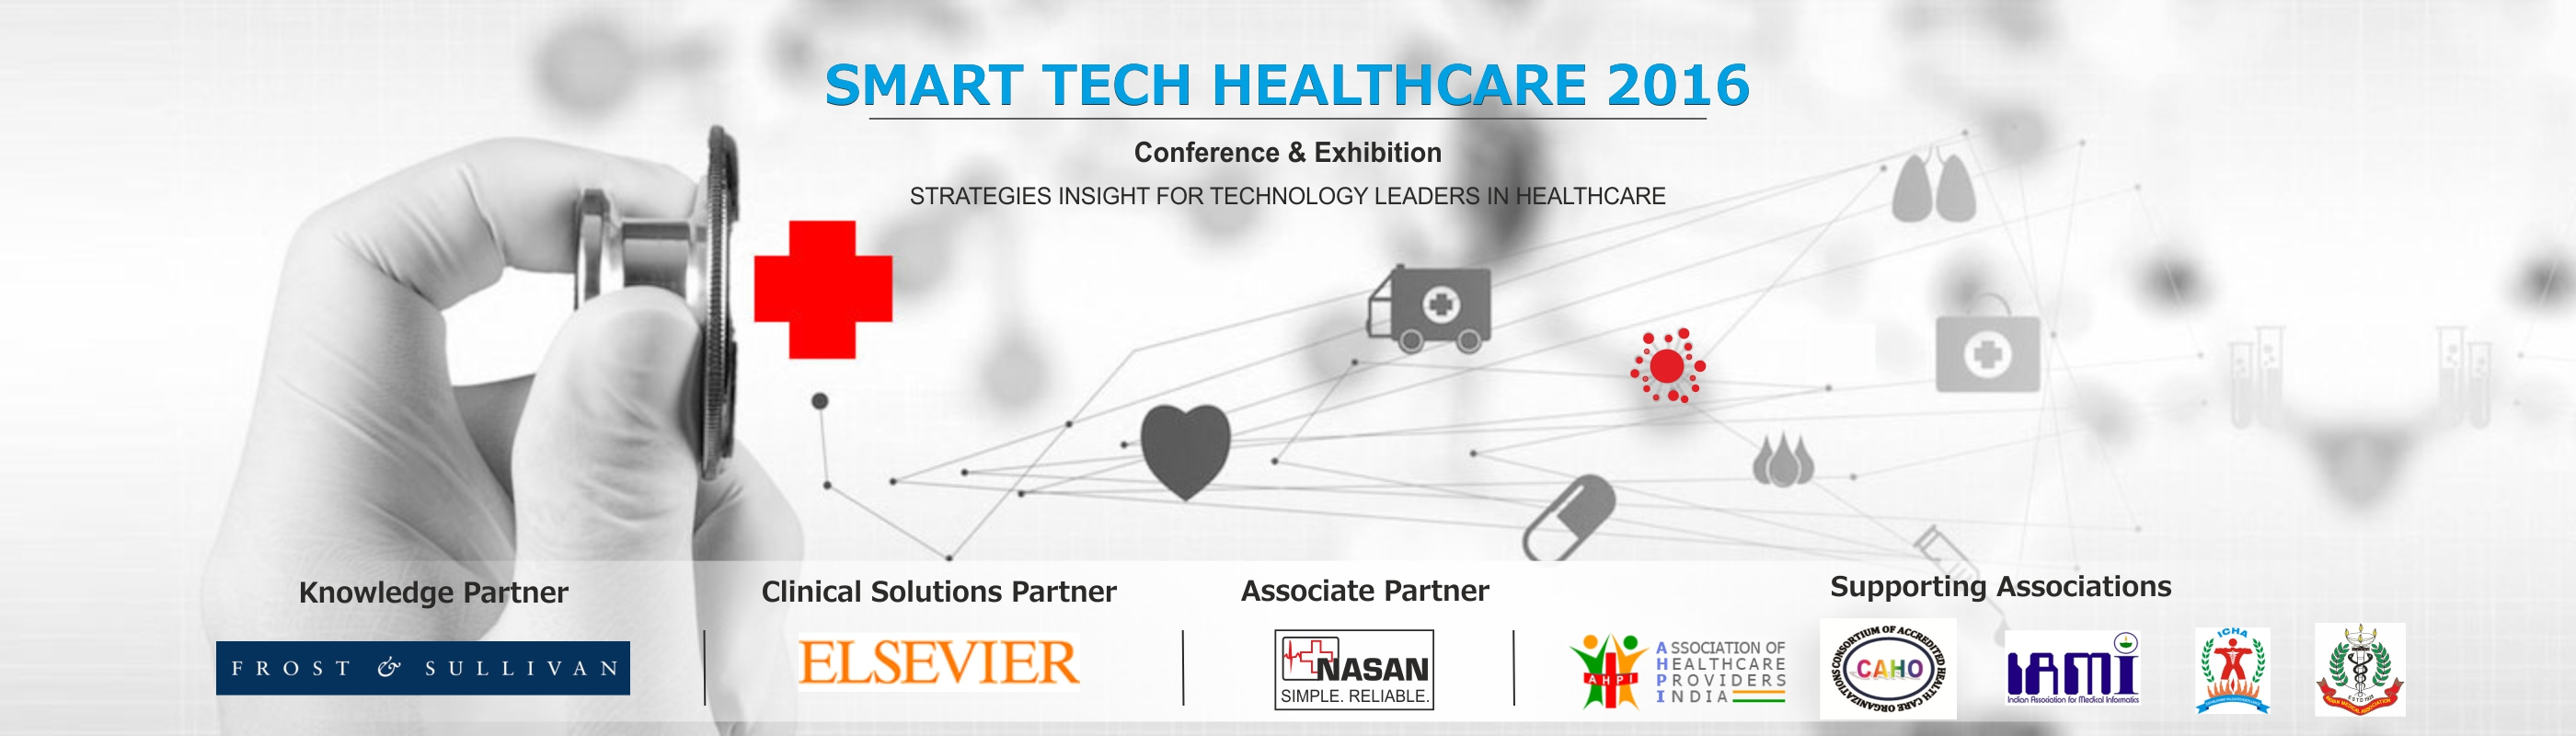 Smart Tech Healthcare Summit